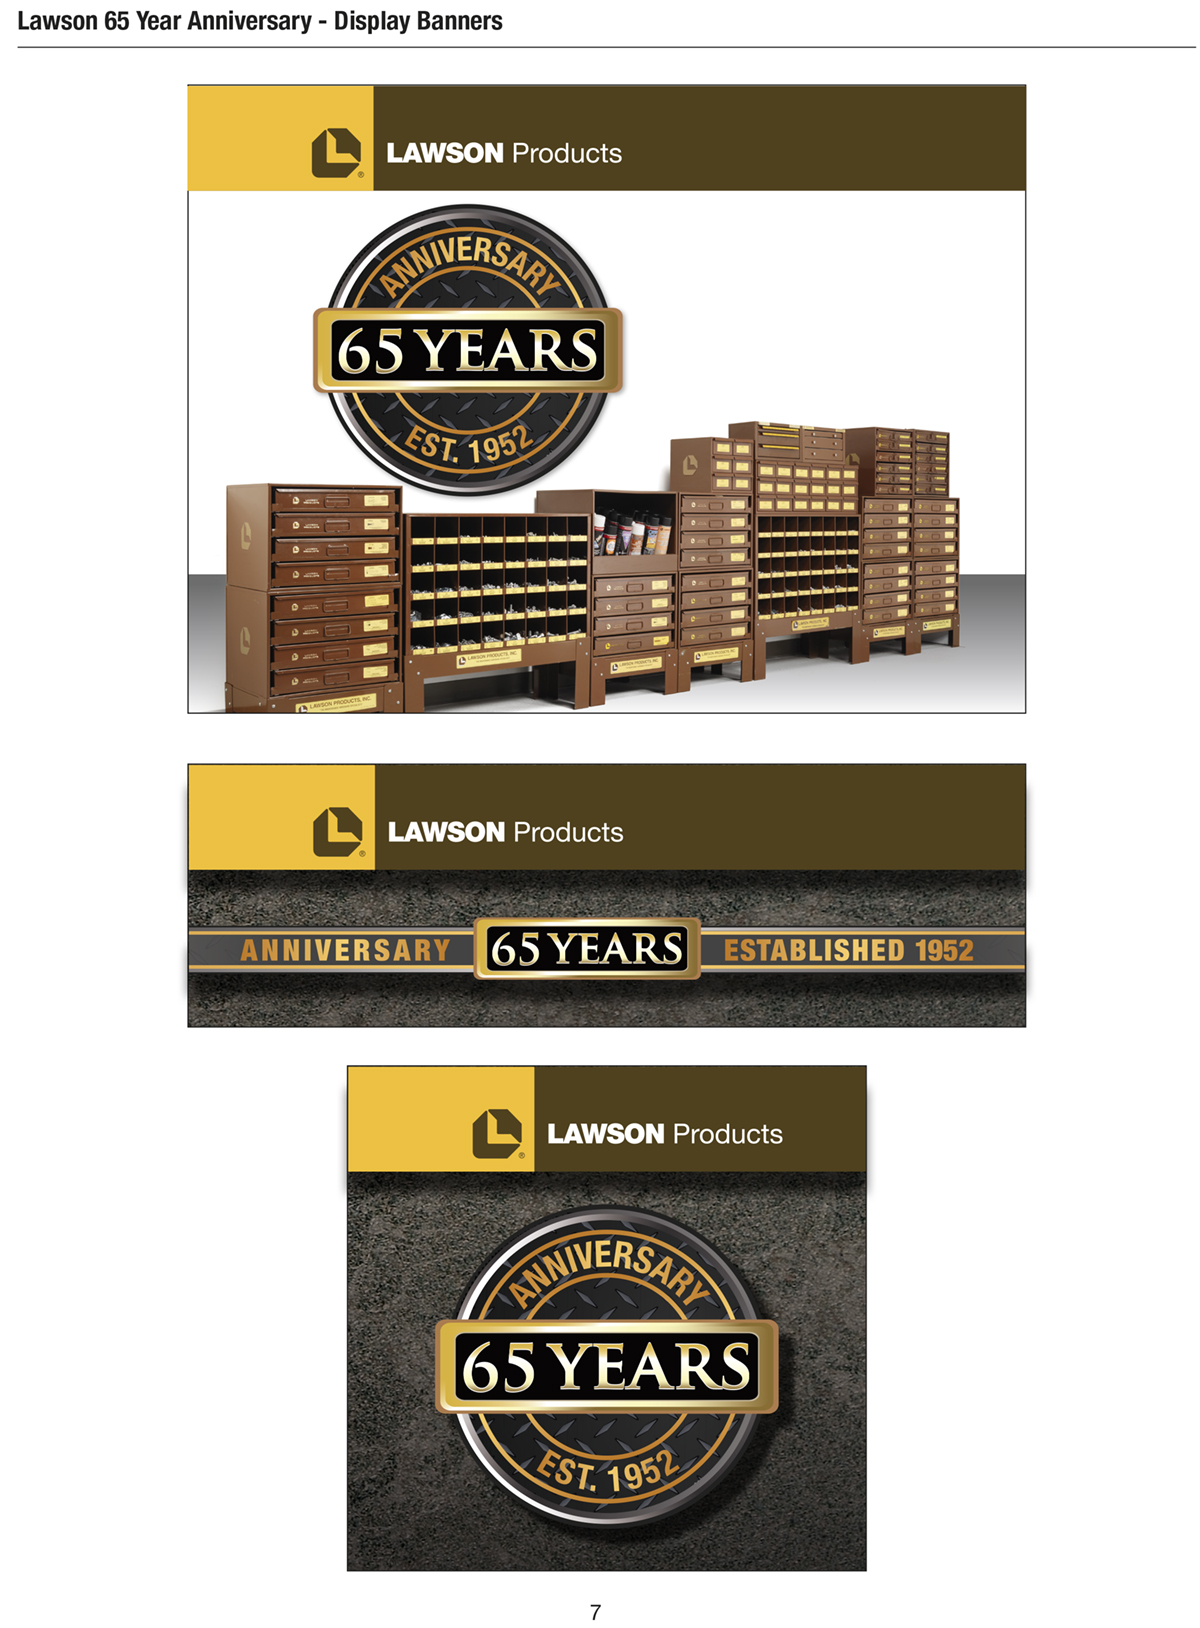 Lawson Products 65 Year Anniversary Graphics Style Guide